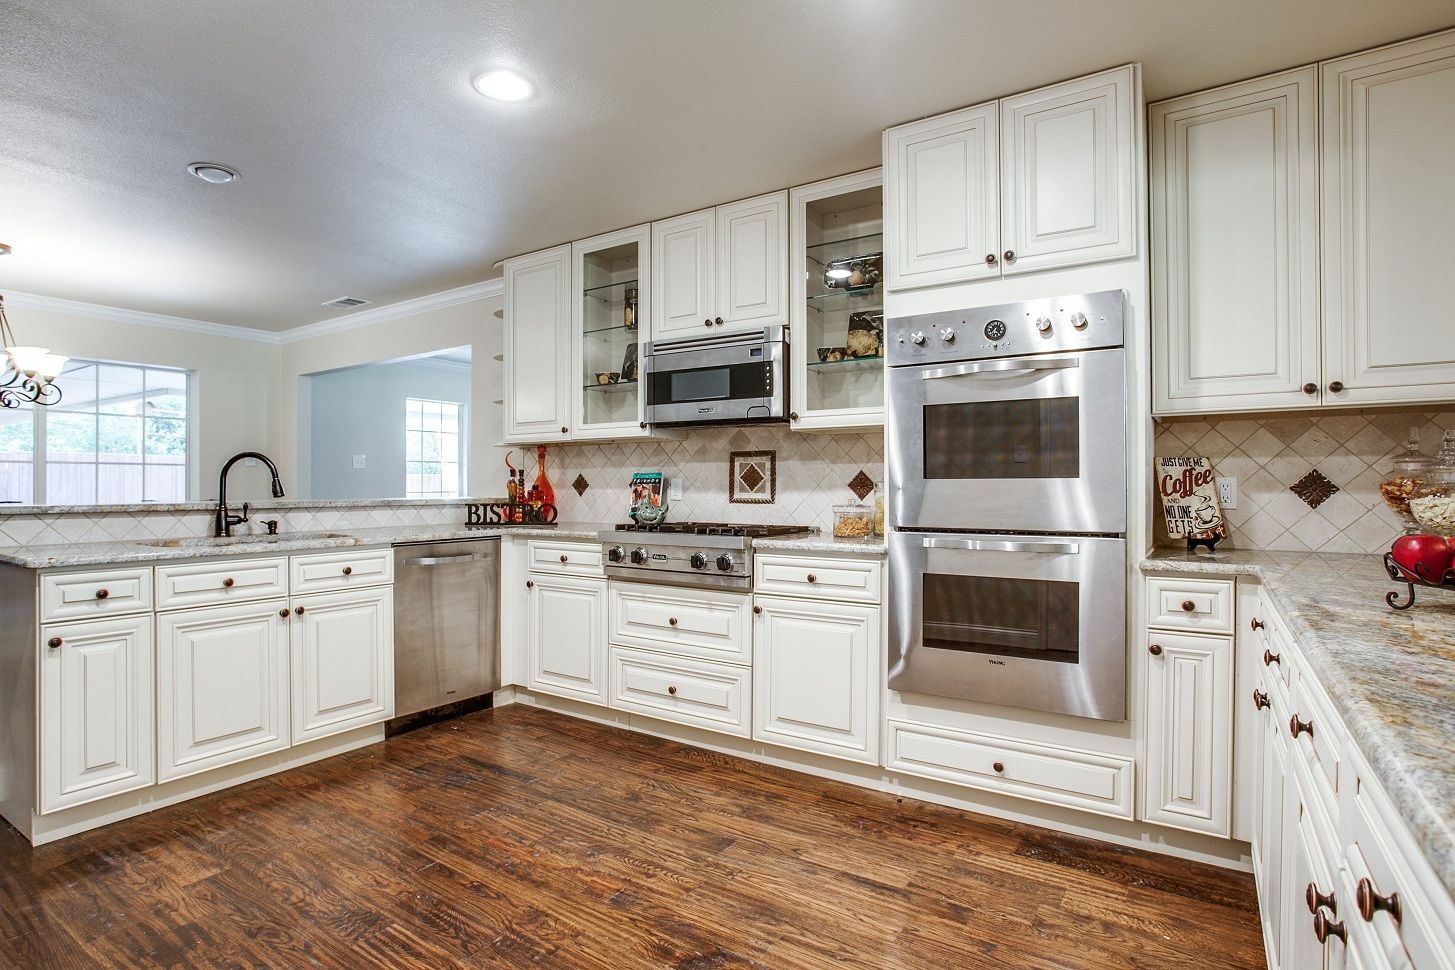 Off White Kitchen Black Appliances off white kitchen cabinets with white appliances | basement